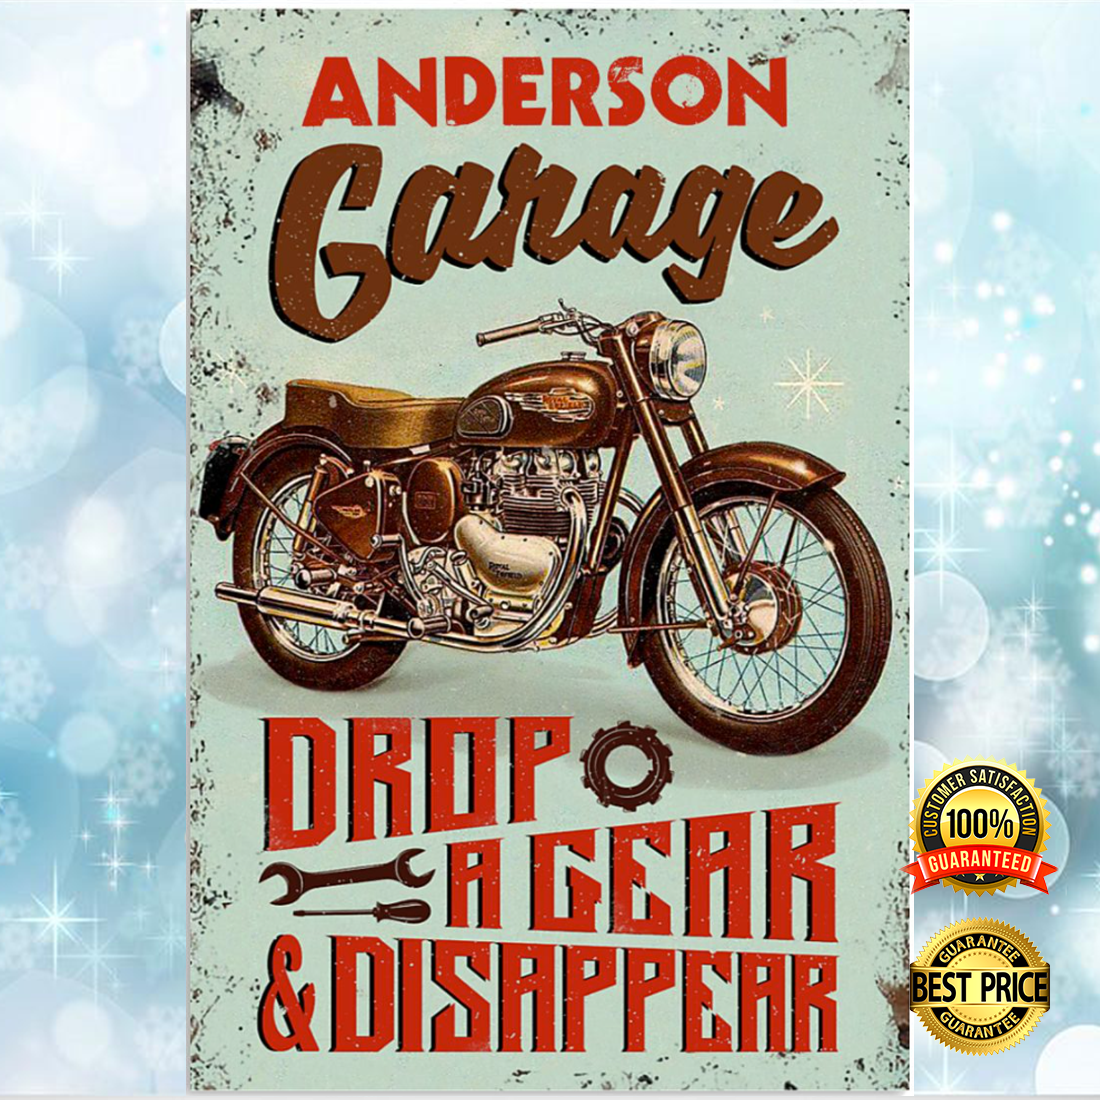 Personalized garage drop a gear and disappear poster 5